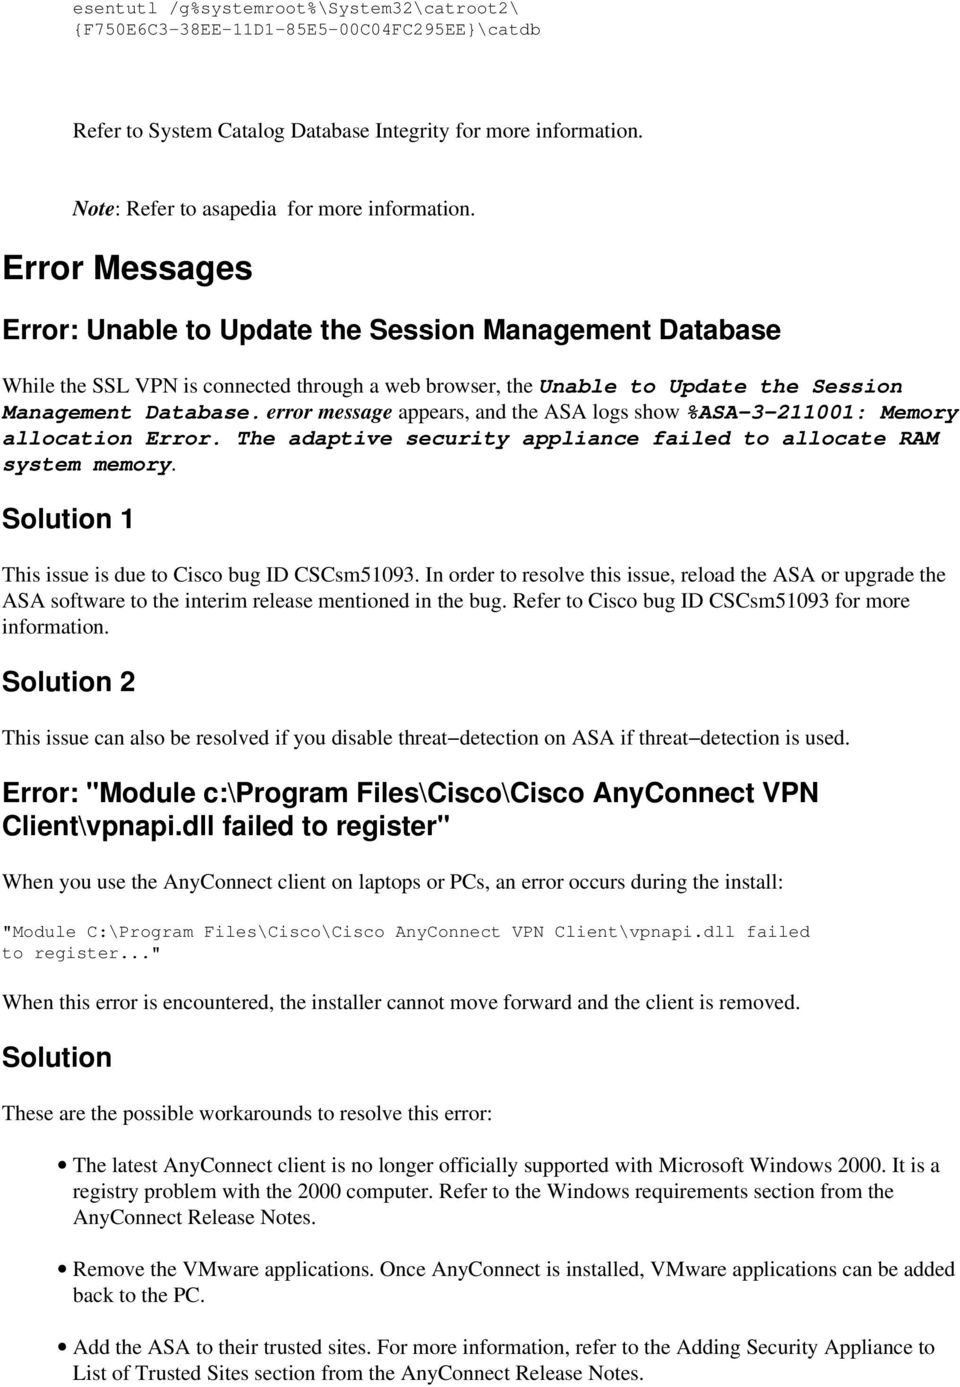 AnyConnect VPN Client Troubleshooting Guide Common Problems - PDF